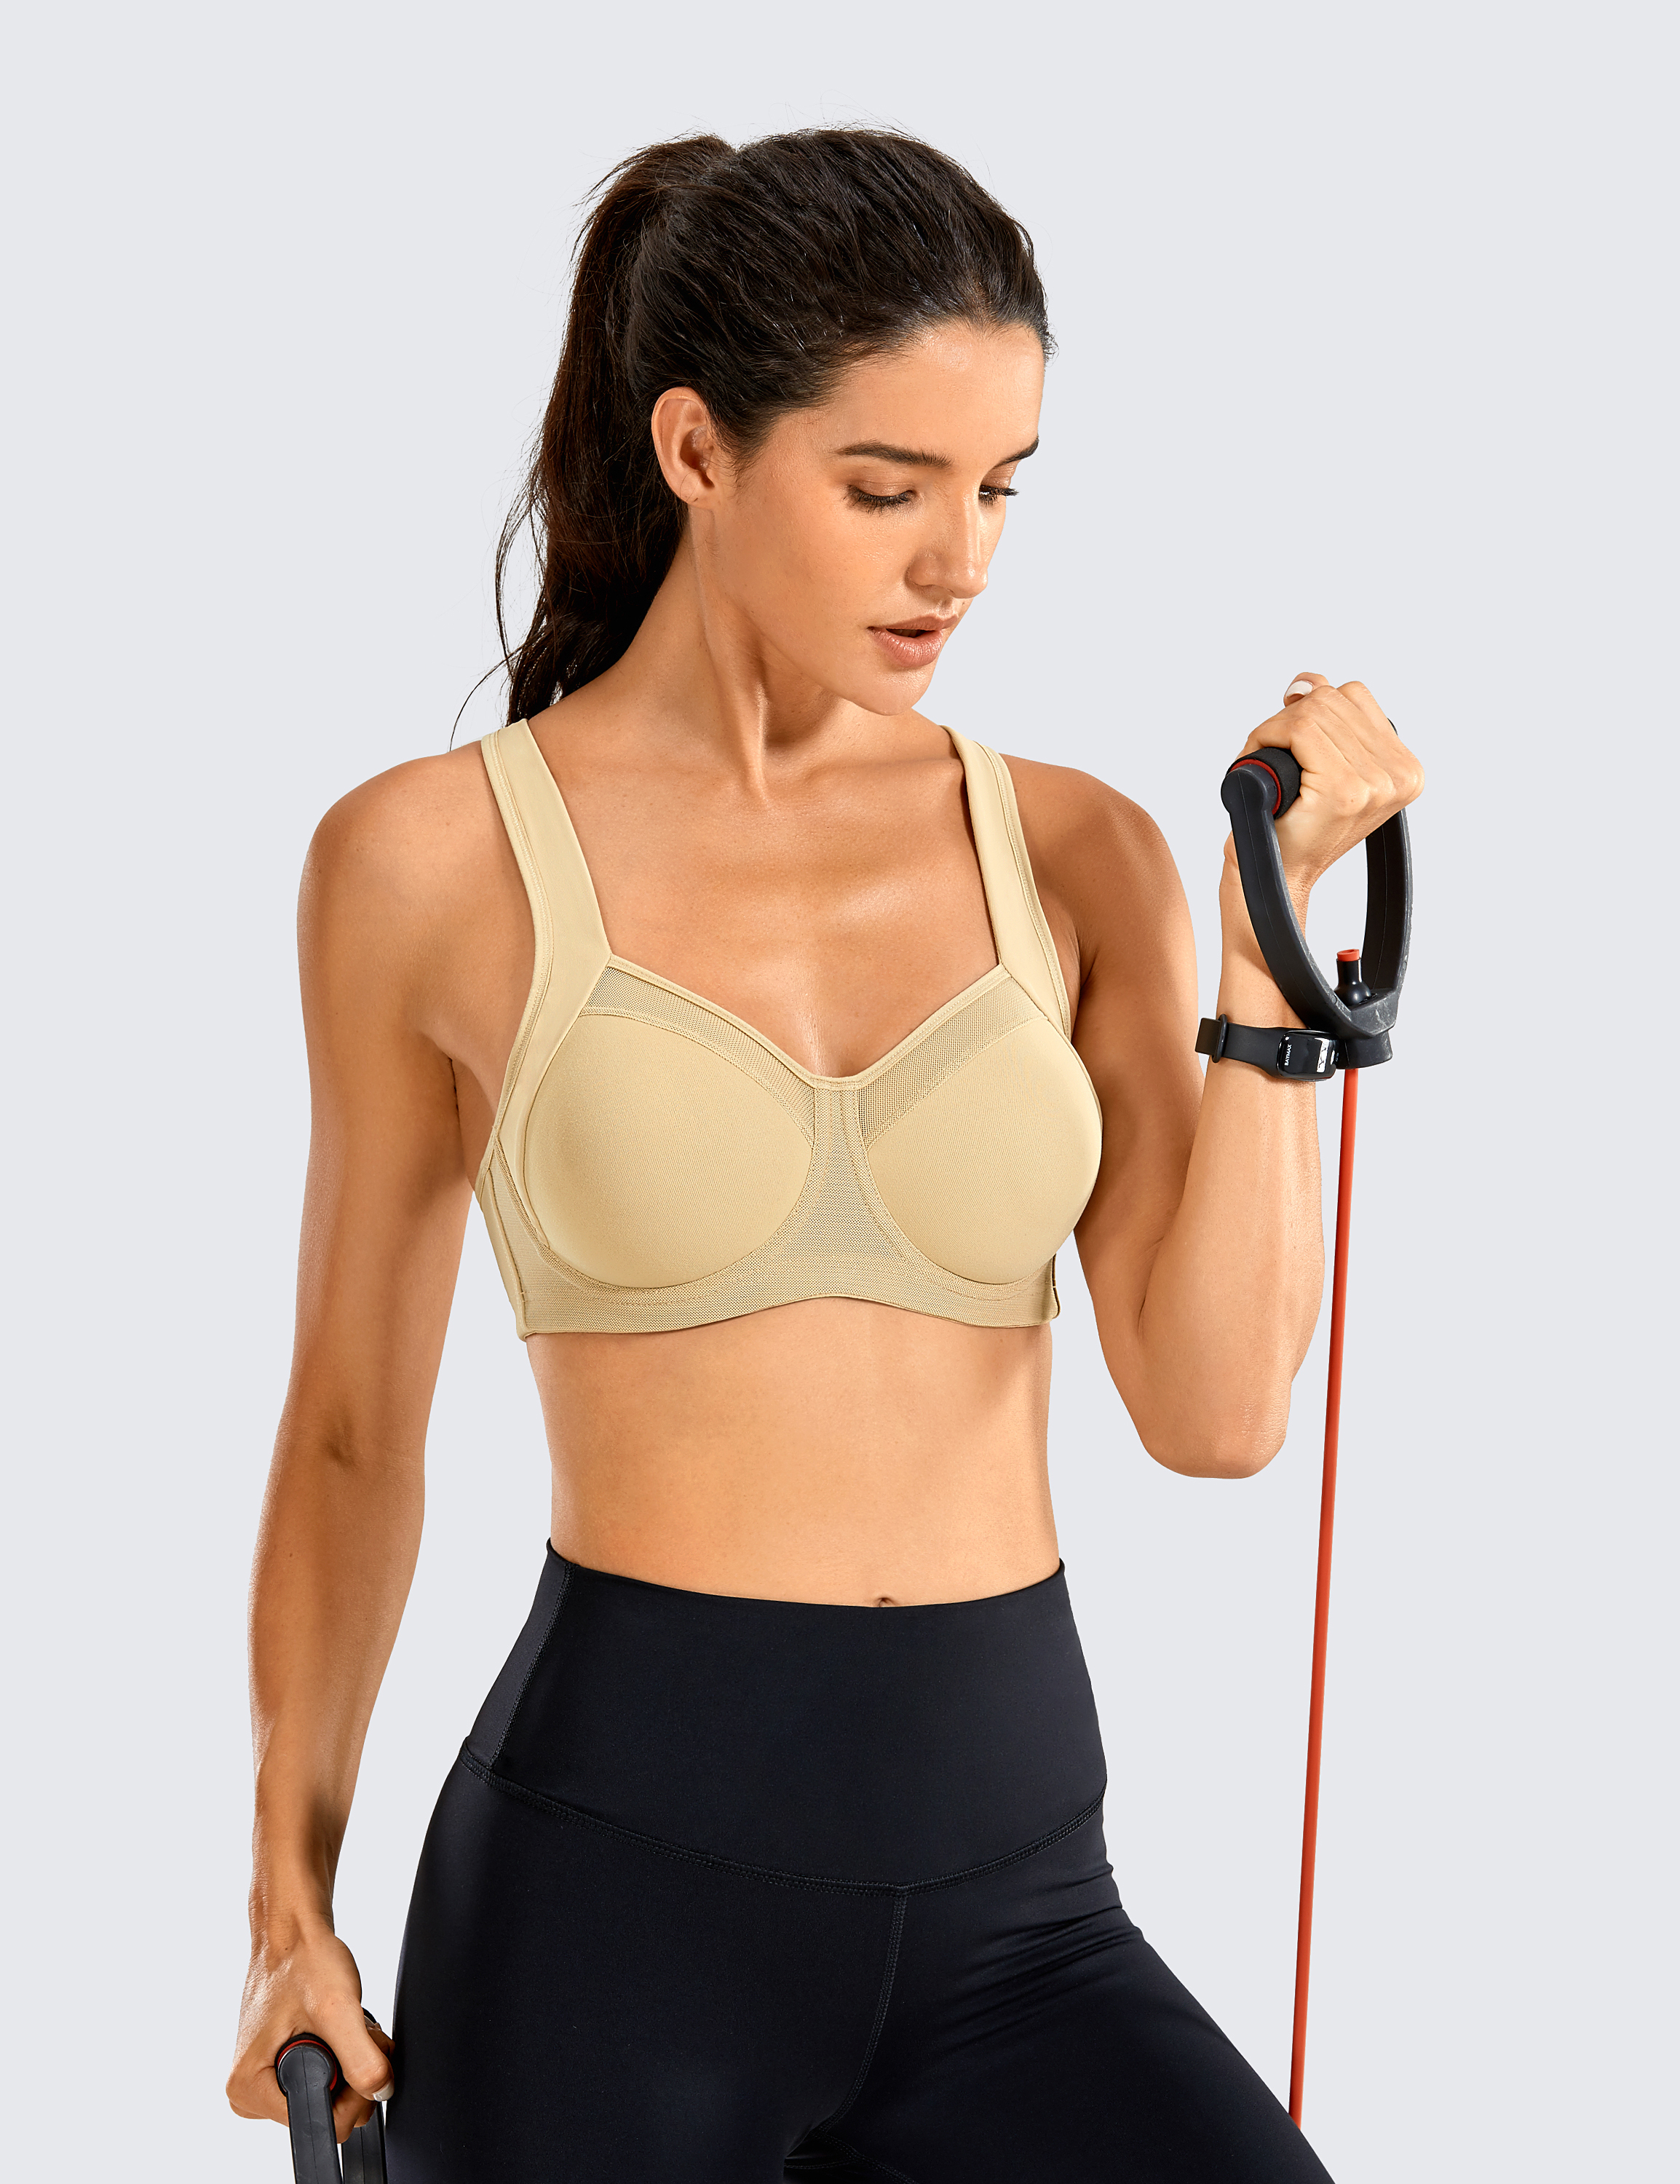 SYROKAN-Women-High-Impact-Sports-Bra-Underwire-Workout-Running-Powerback-Support thumbnail 39